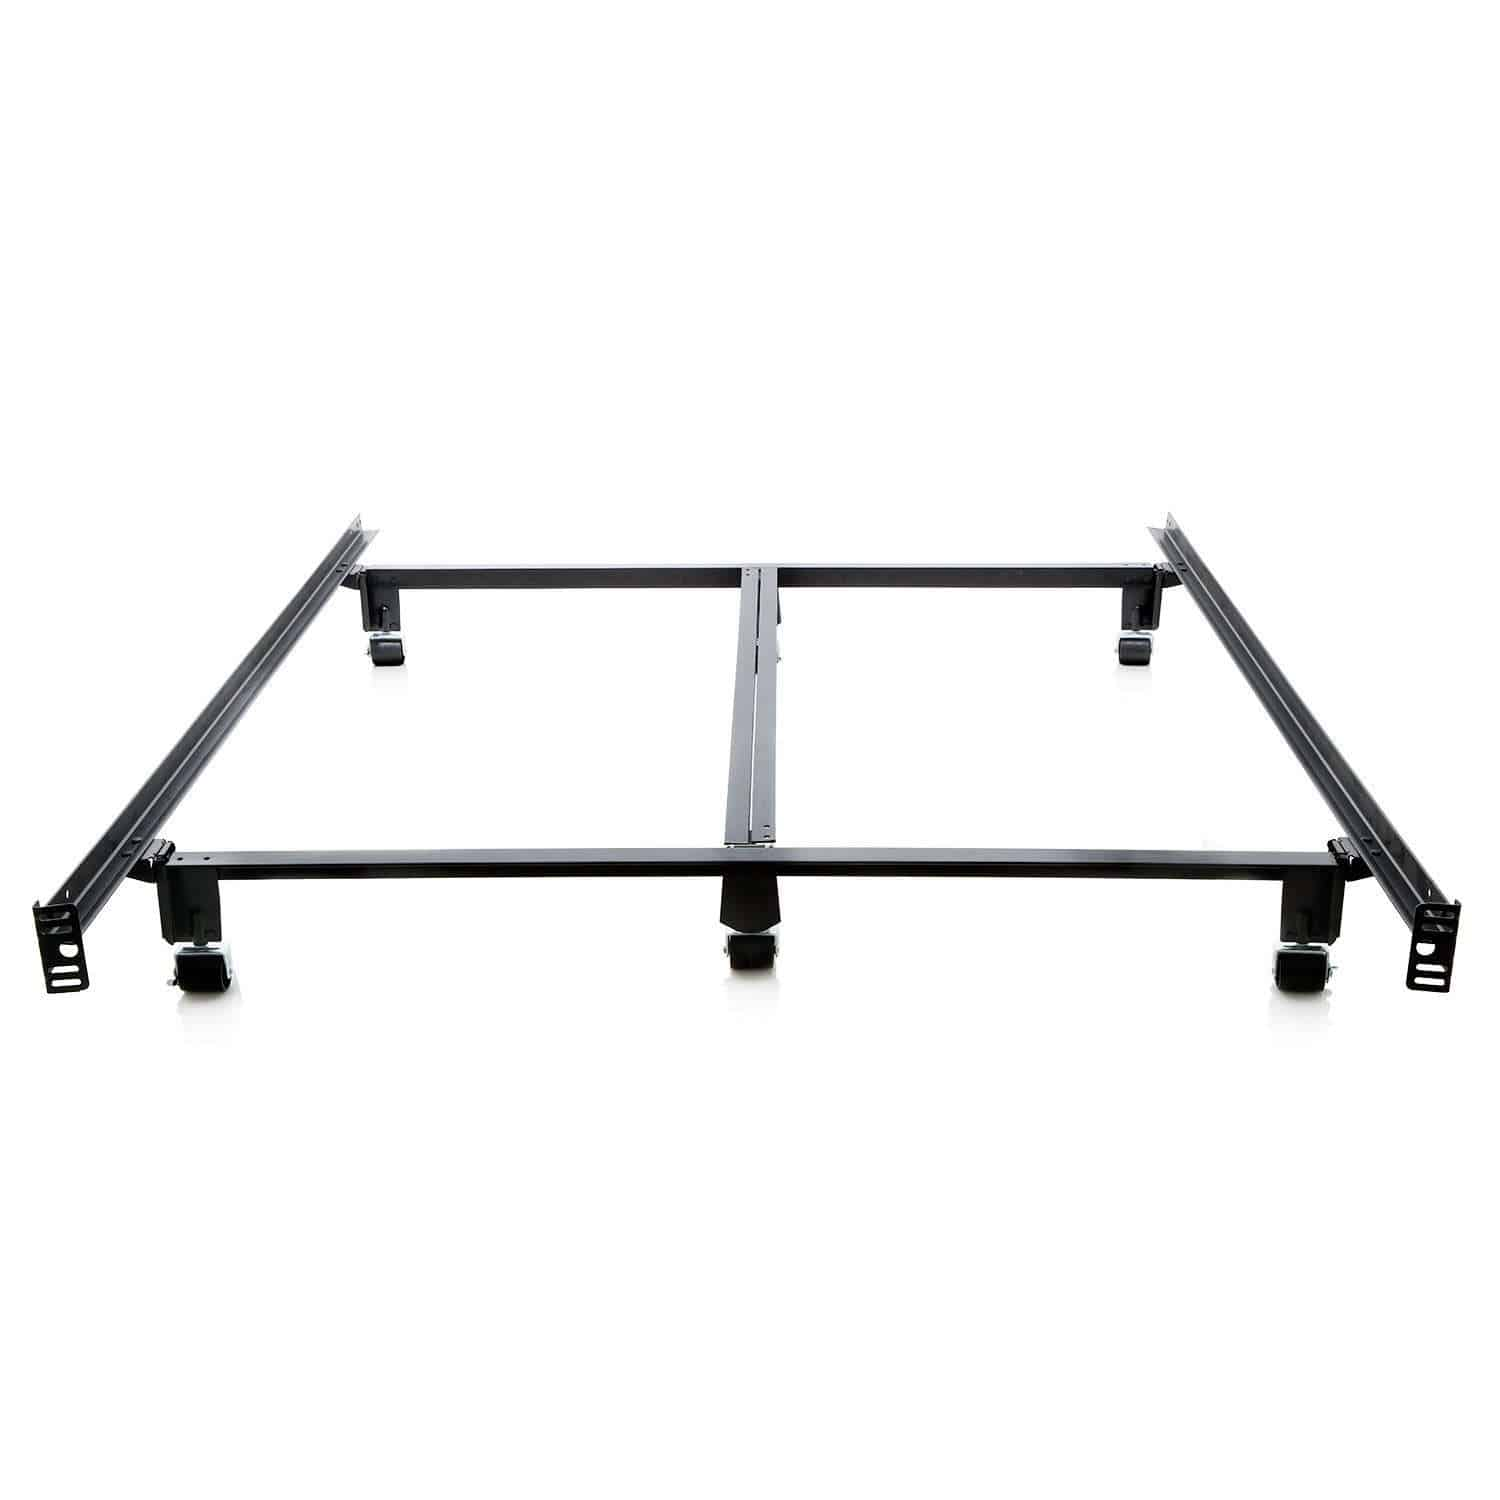 Structures Steelock Super Duty Steel Wedge Lock Metal Bed Frame